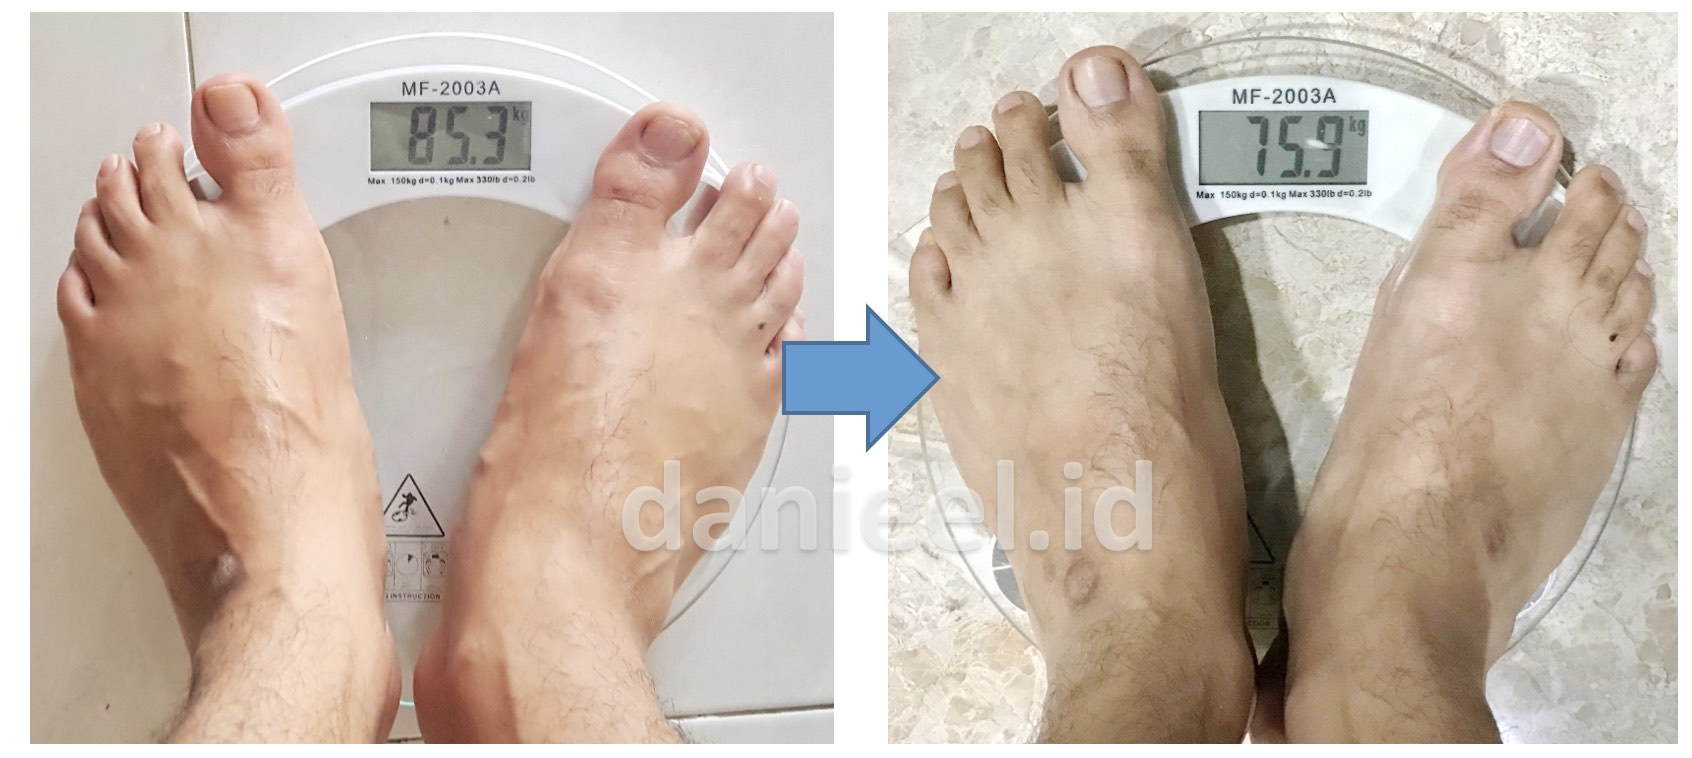 Weight before and after diet